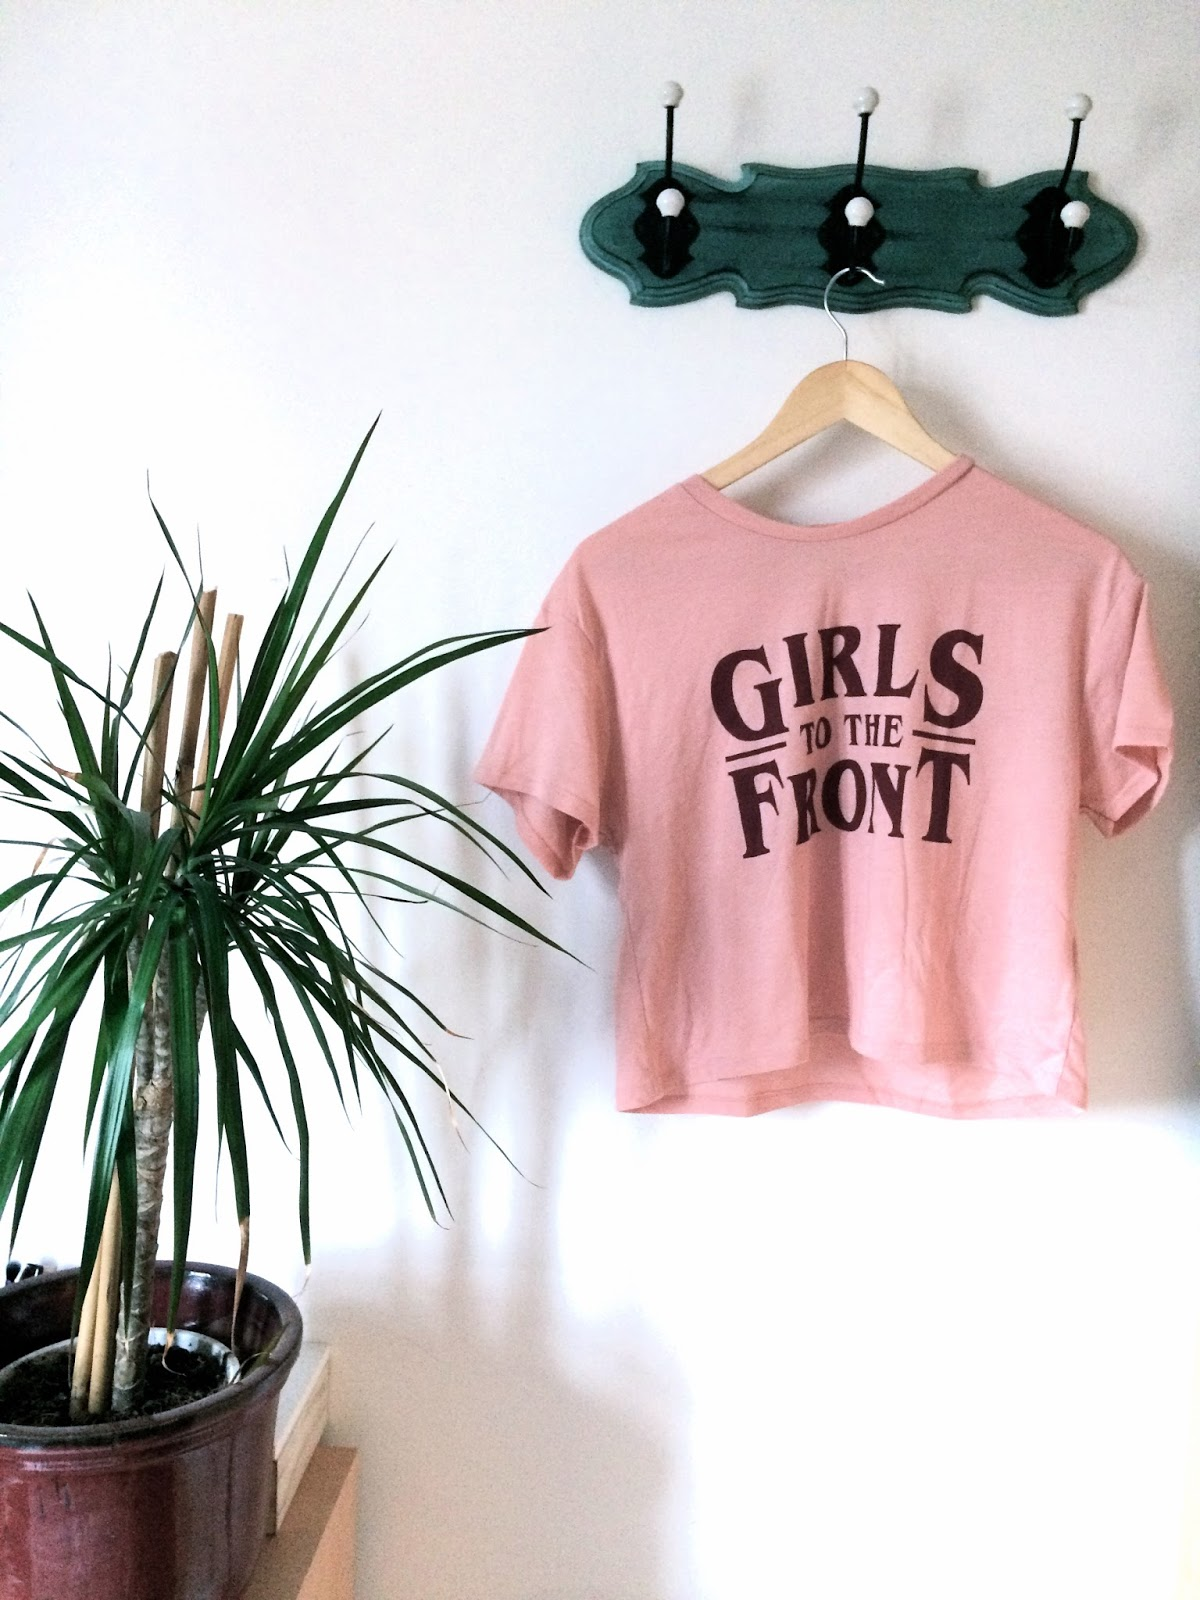 A pink t-shirt with slogan 'Girls to the Front'